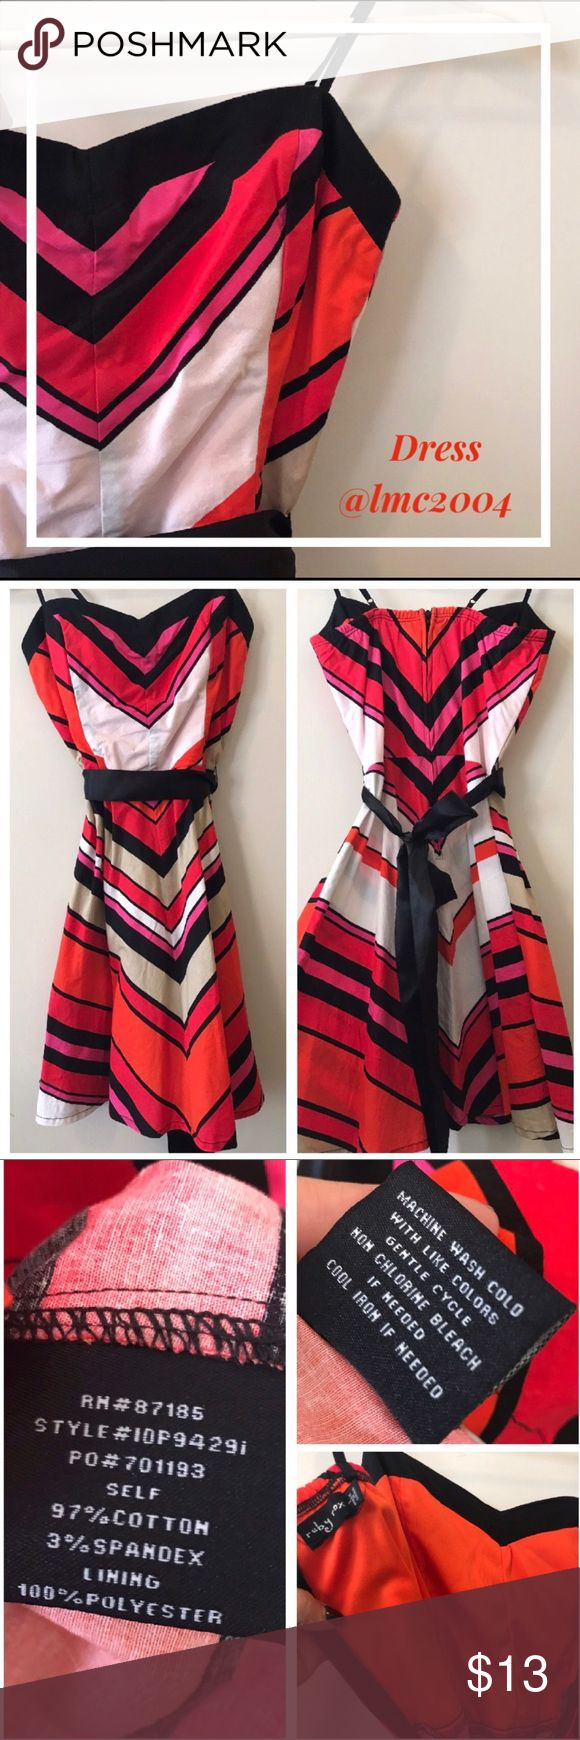 "Ruby rox Orange Striped Dress 🧡 Preloved in great conditions, no flaws. Zipper on the Back. Comes with black ribbon to adjust waist. It's lined In the Bust area. Sweetheart heart neckline. Adjustable straps. Fun colors, Orange, Red, Pink, white, black & tan. Approx 28""L Dresses Midi"